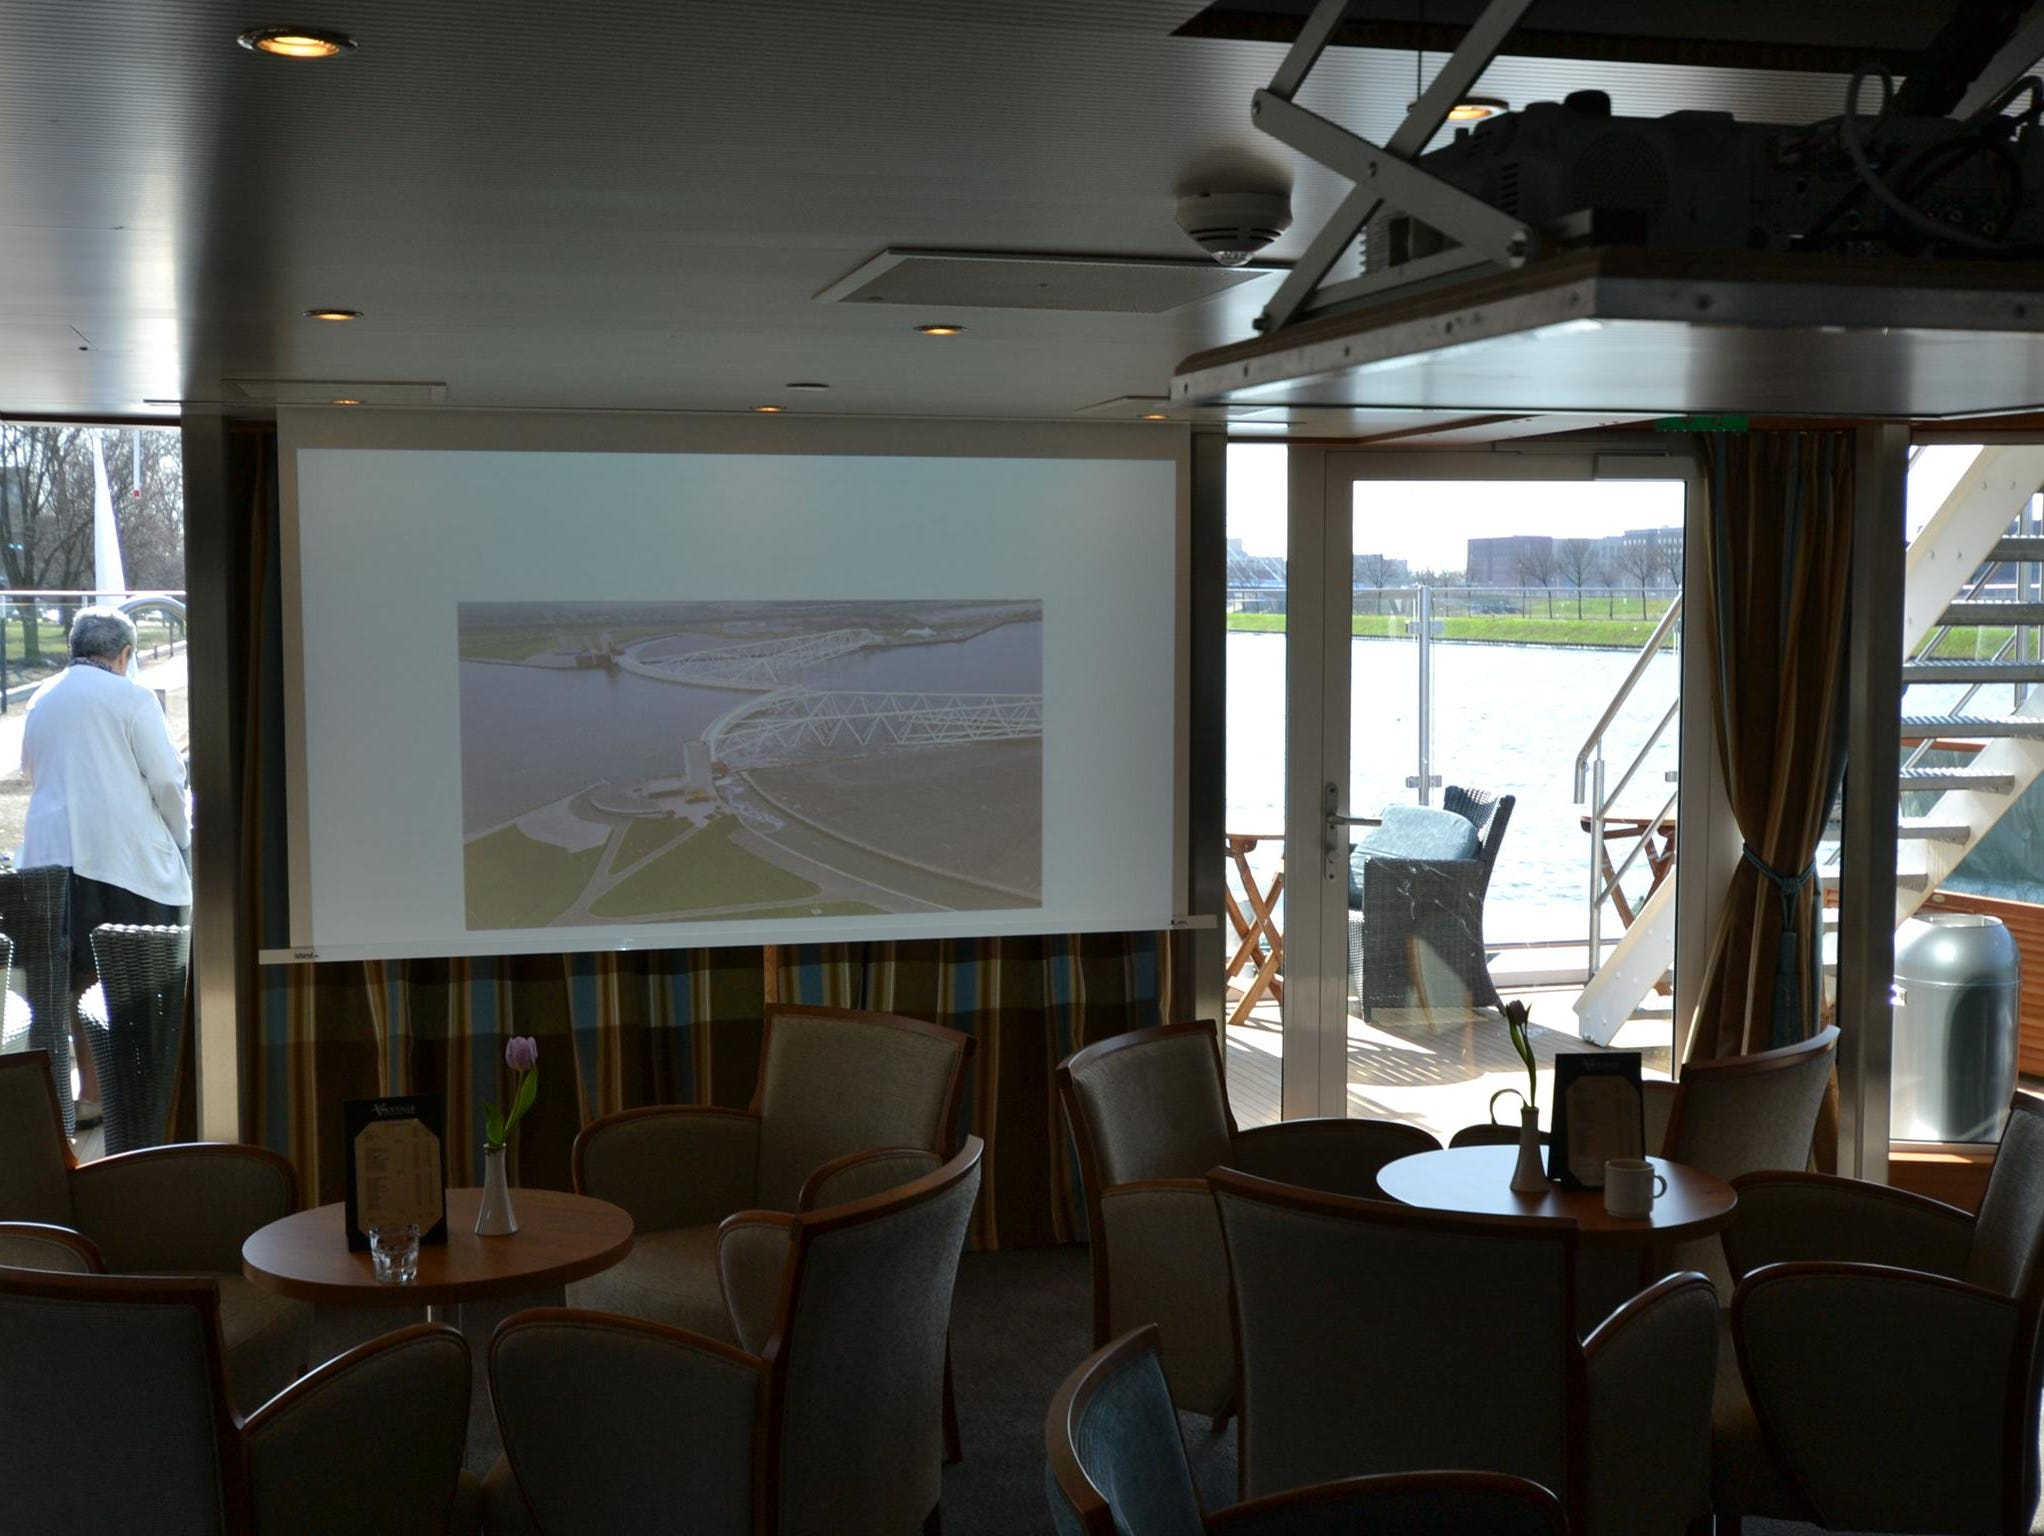 The Latitude 52 Lounge is equipped with pull-down projectors that are used during port lectures and other on-board presentations.